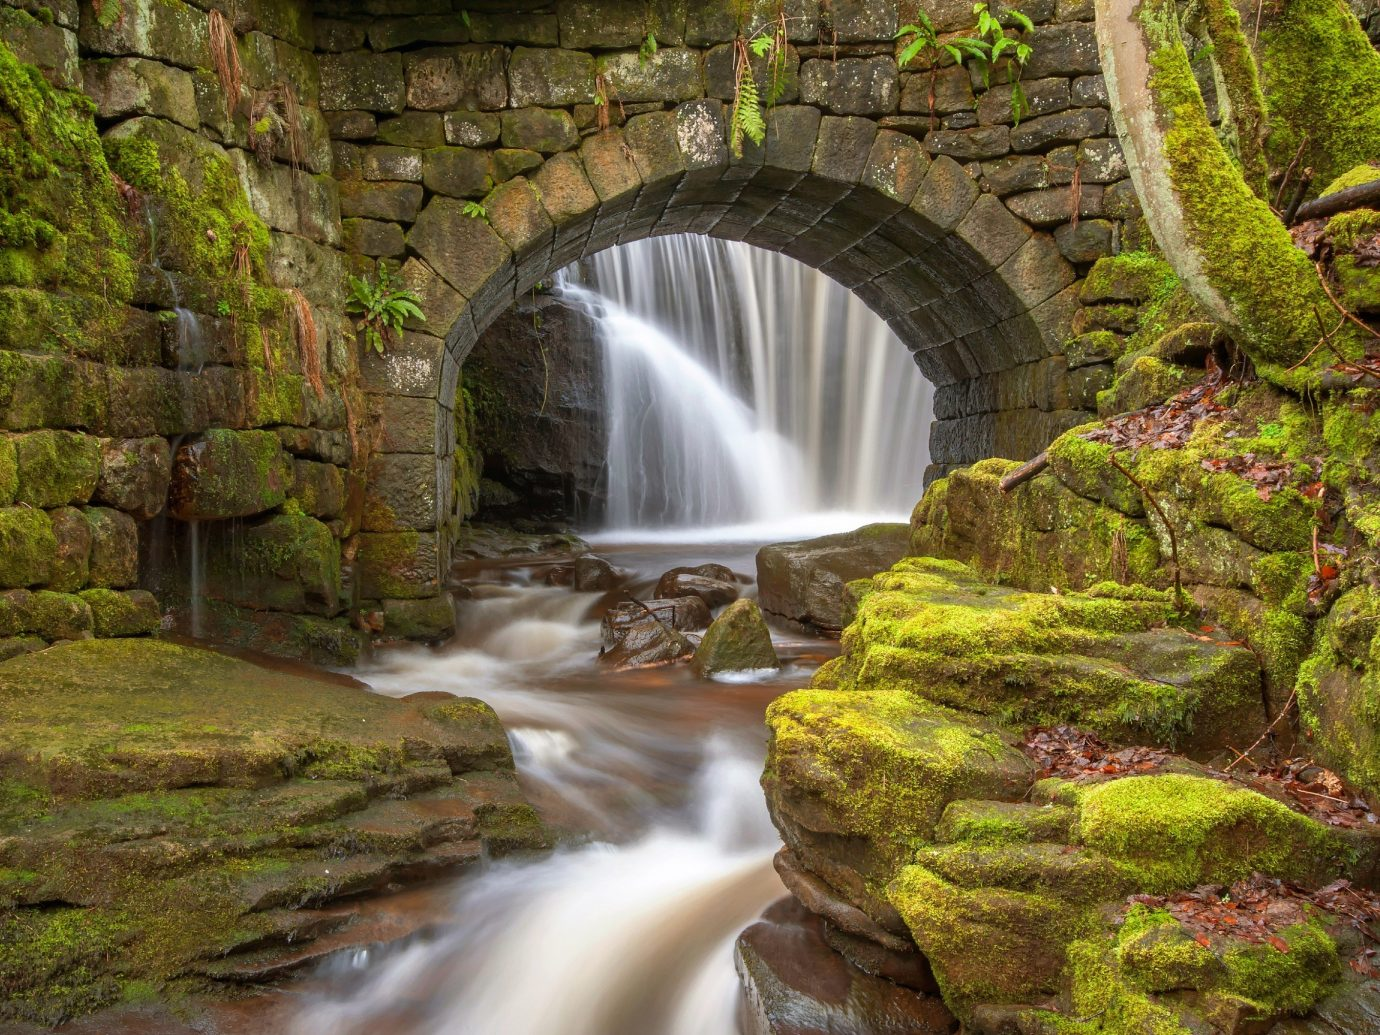 Trip Ideas Nature Waterfall rock water watercourse stone stream water feature River Forest autumn landscape woodland devil's bridge Jungle rainforest